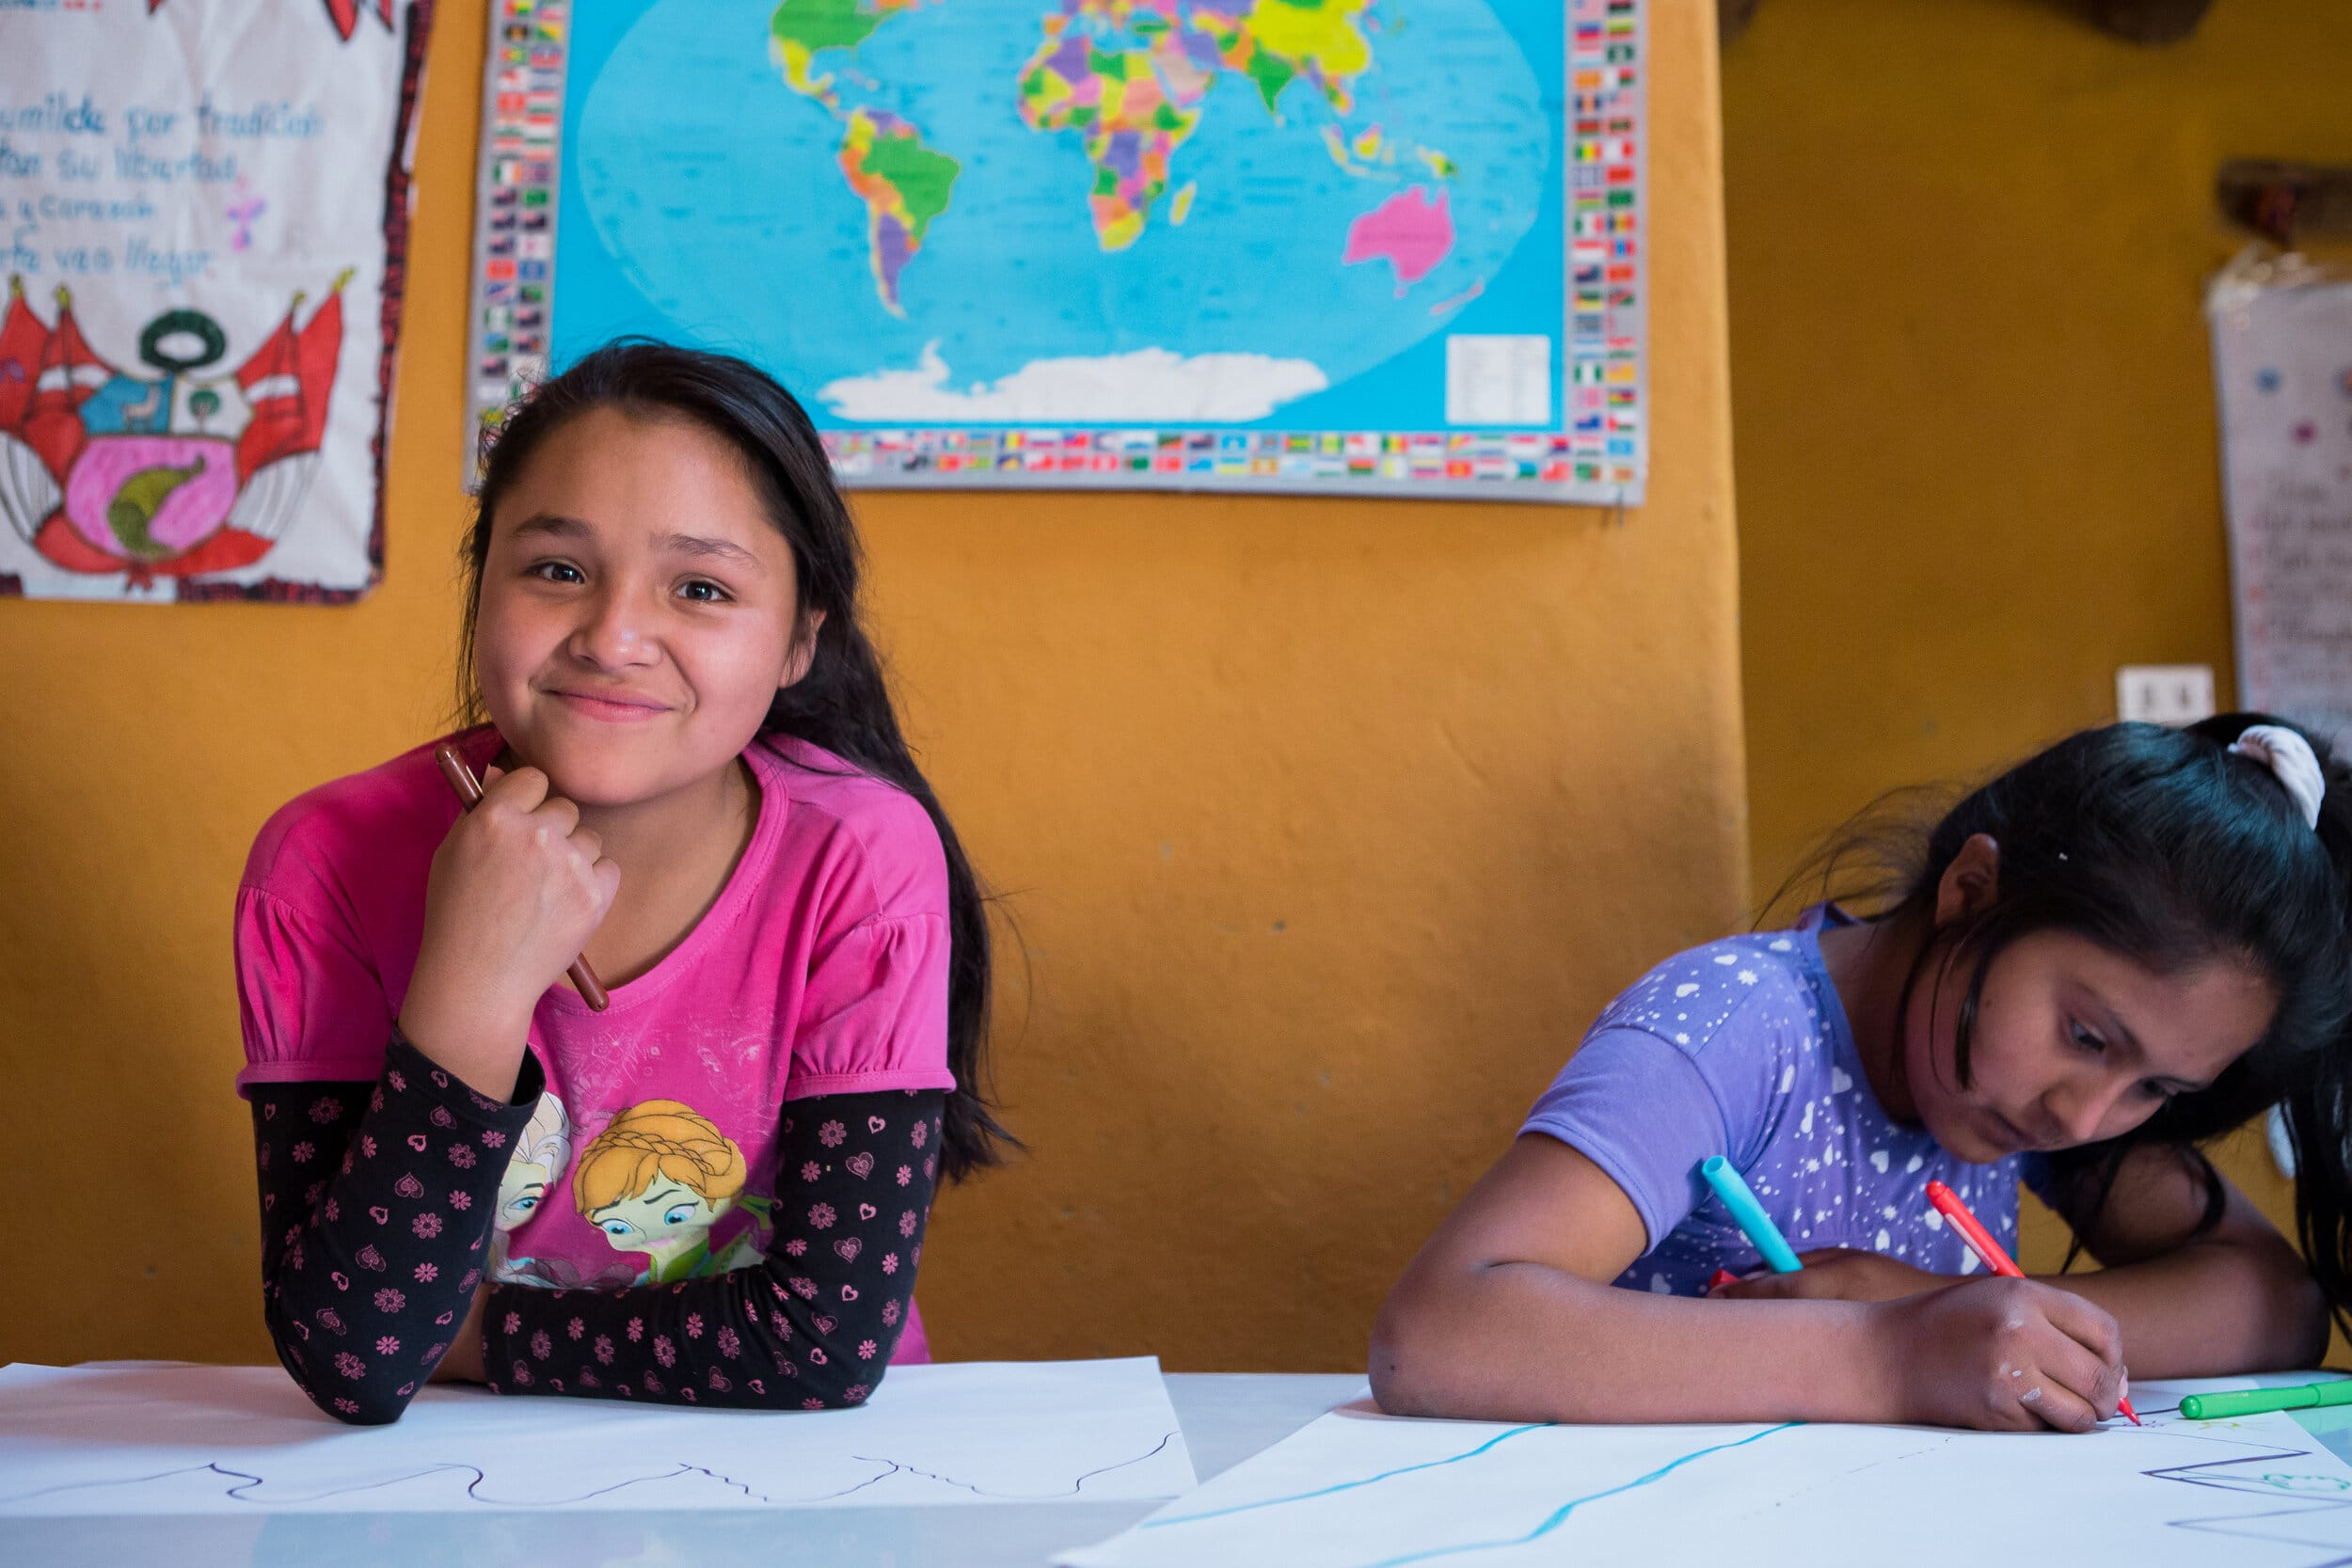 shes the first impact image showing two girls in classroom